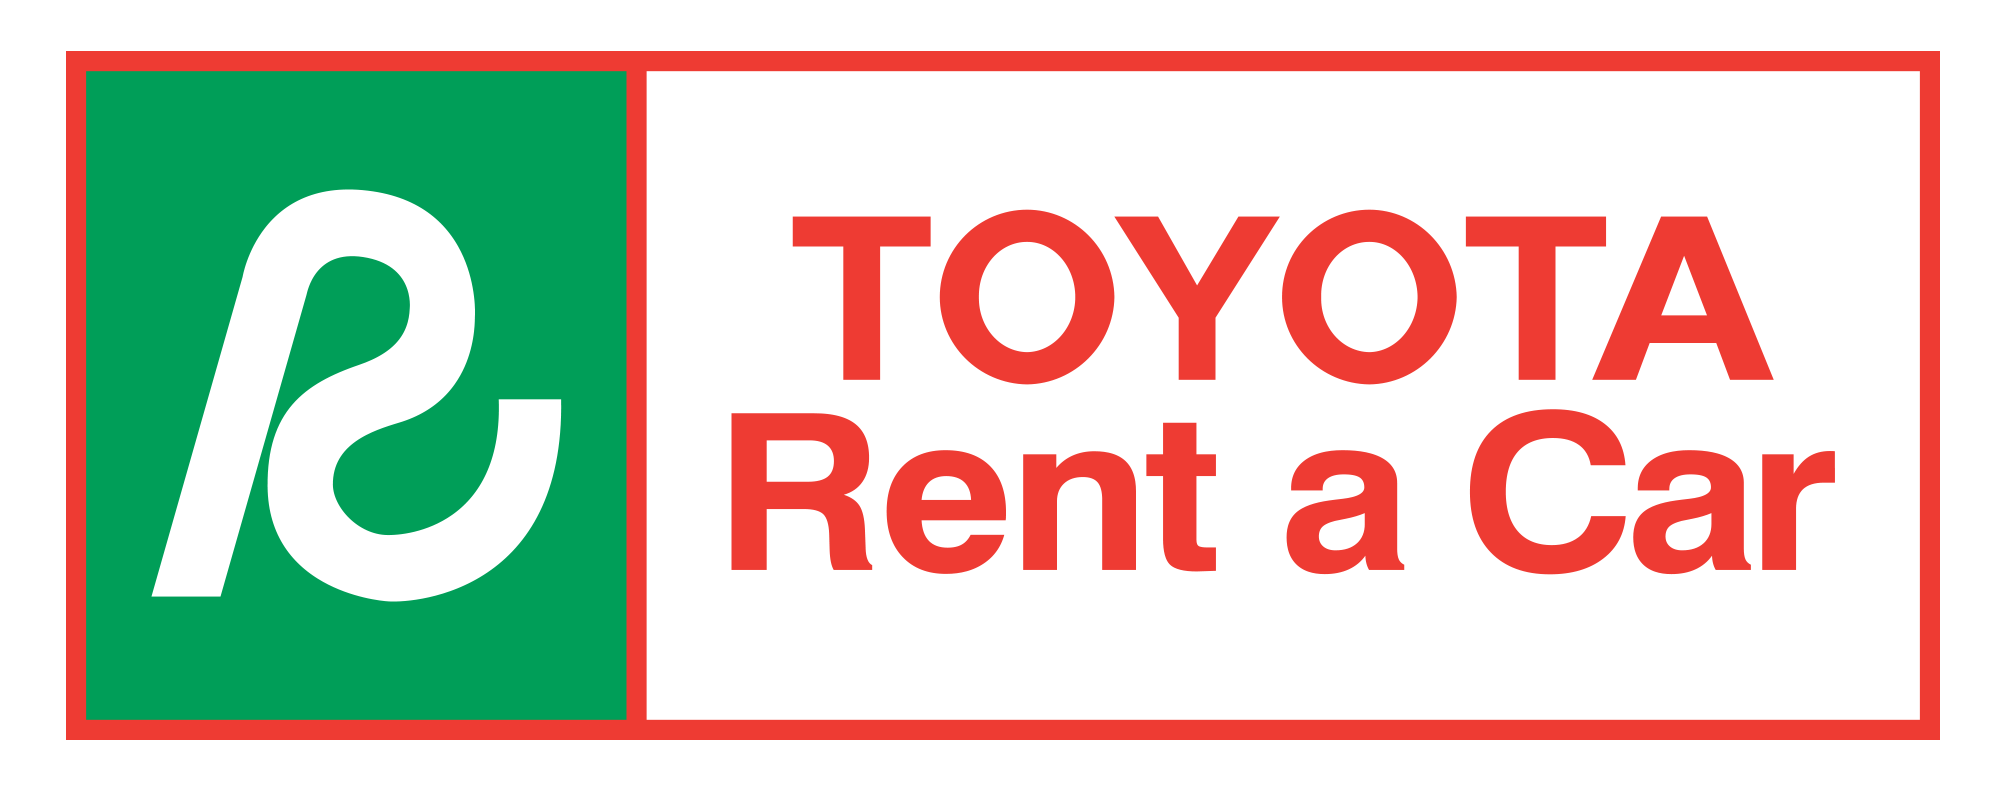 Toyota Of Tampa Bay Fast Friendly Fair New Used Toyota Dealer - What is a dealer invoice rocco online store